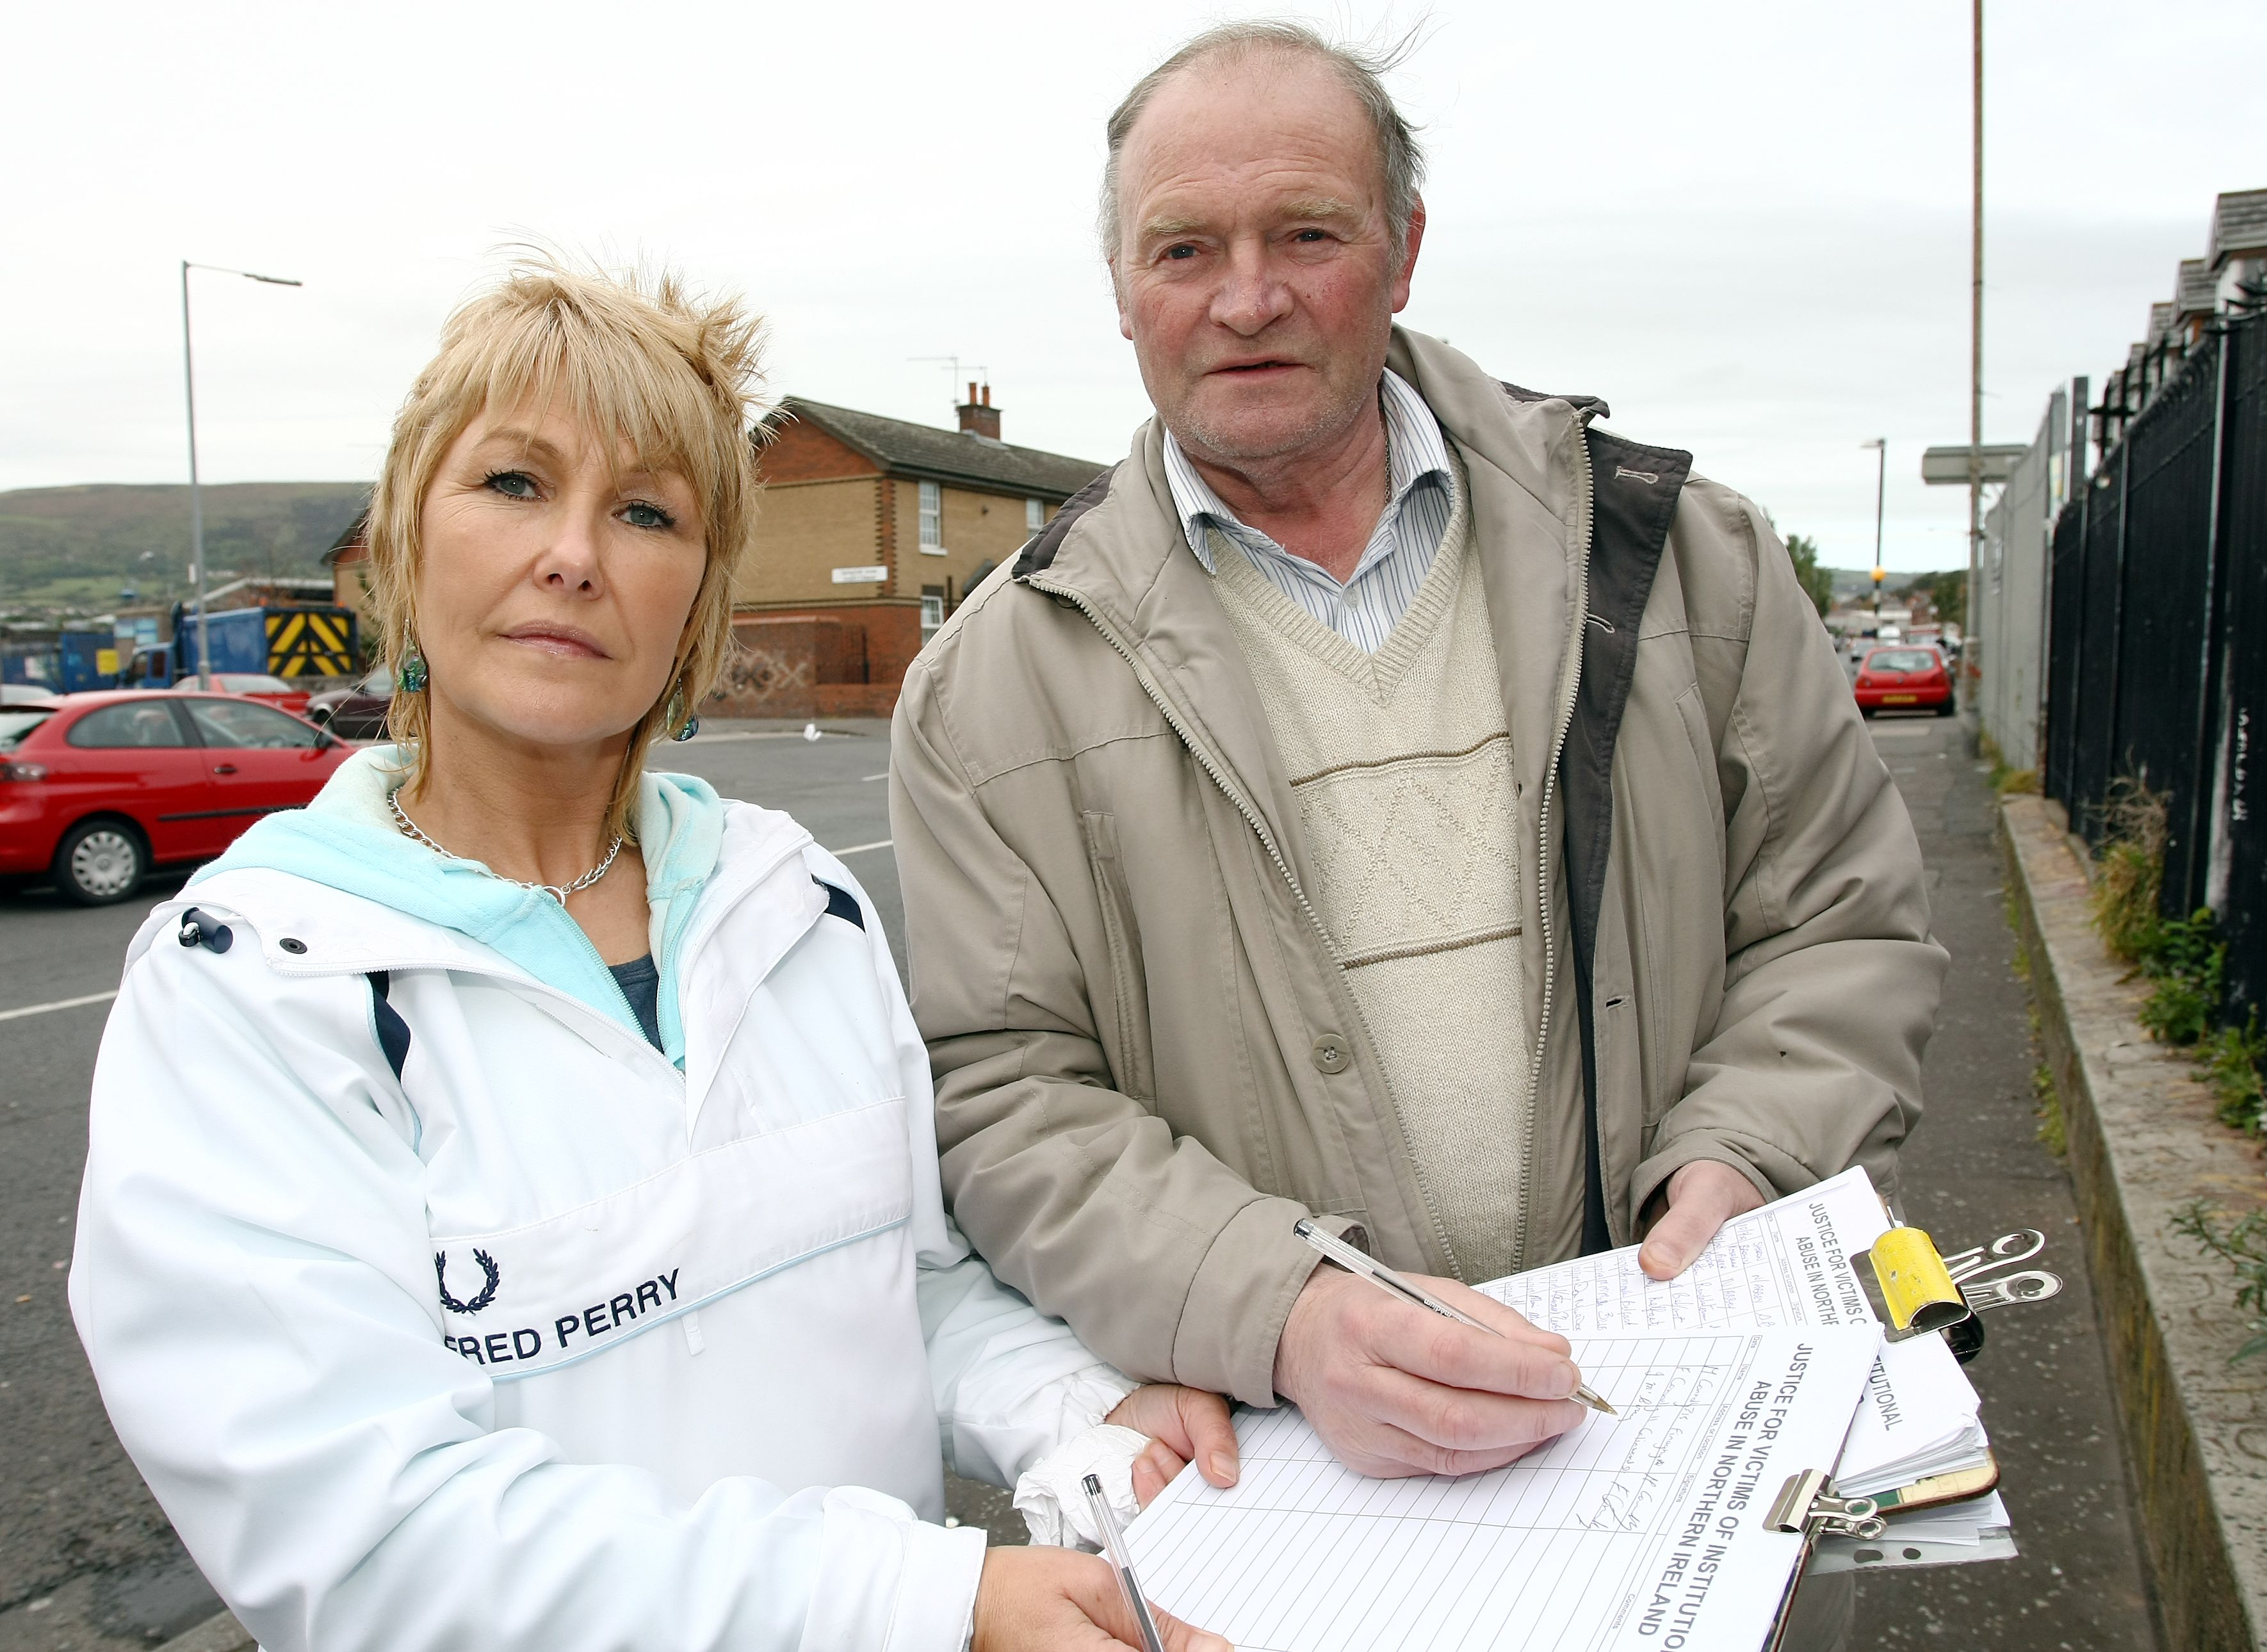 TIRELESS: Institutional abuse survivor Margaret McGuckin with Joe McCorry signing her petition; the appointment of a Commissioner has harmed the campaign